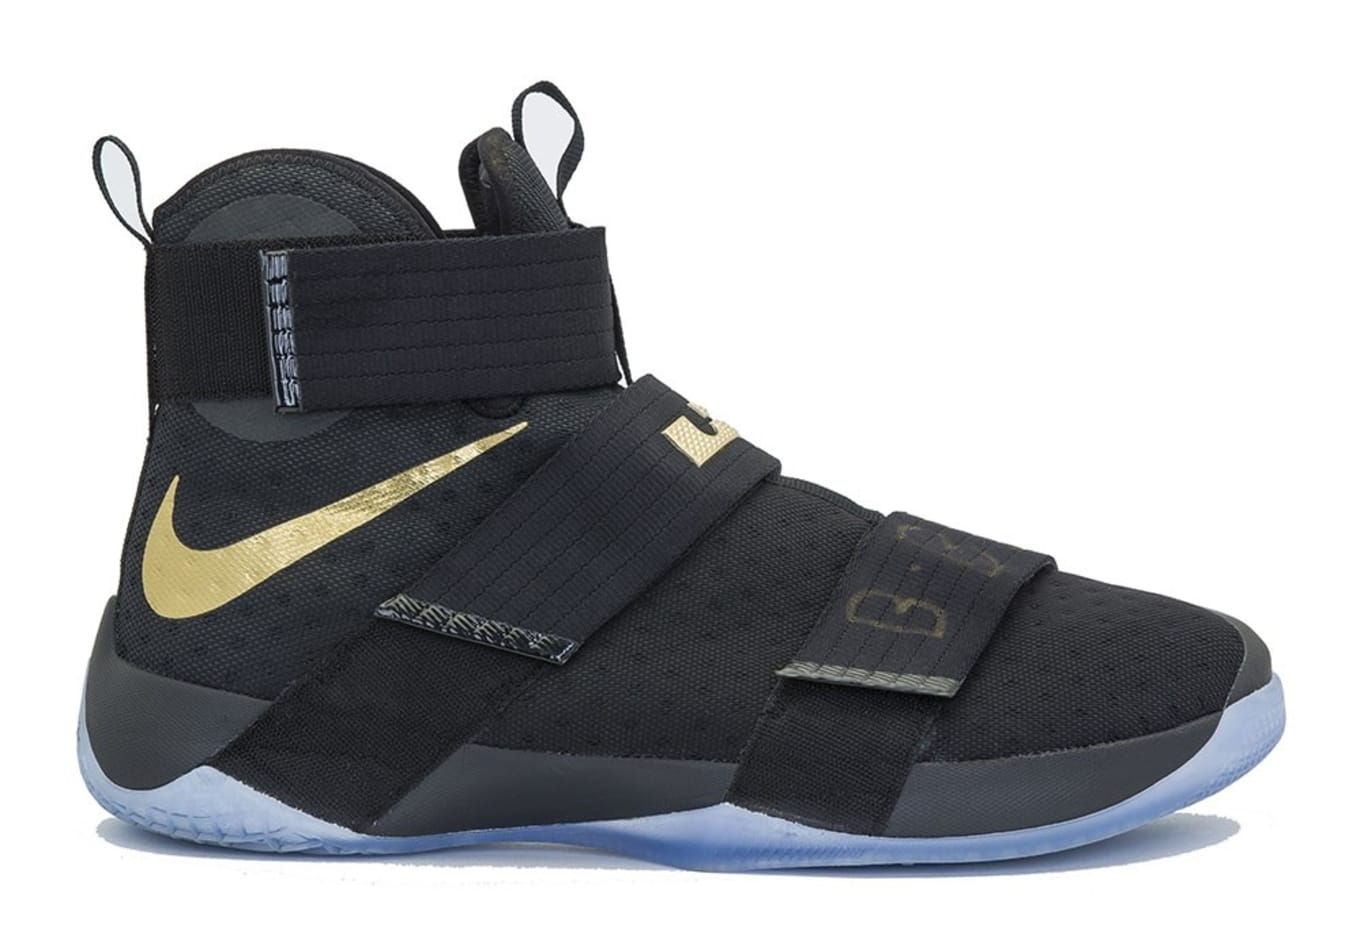 bf0470c760a LeBron James  I Promise School Game-Worn Nikes Available Now